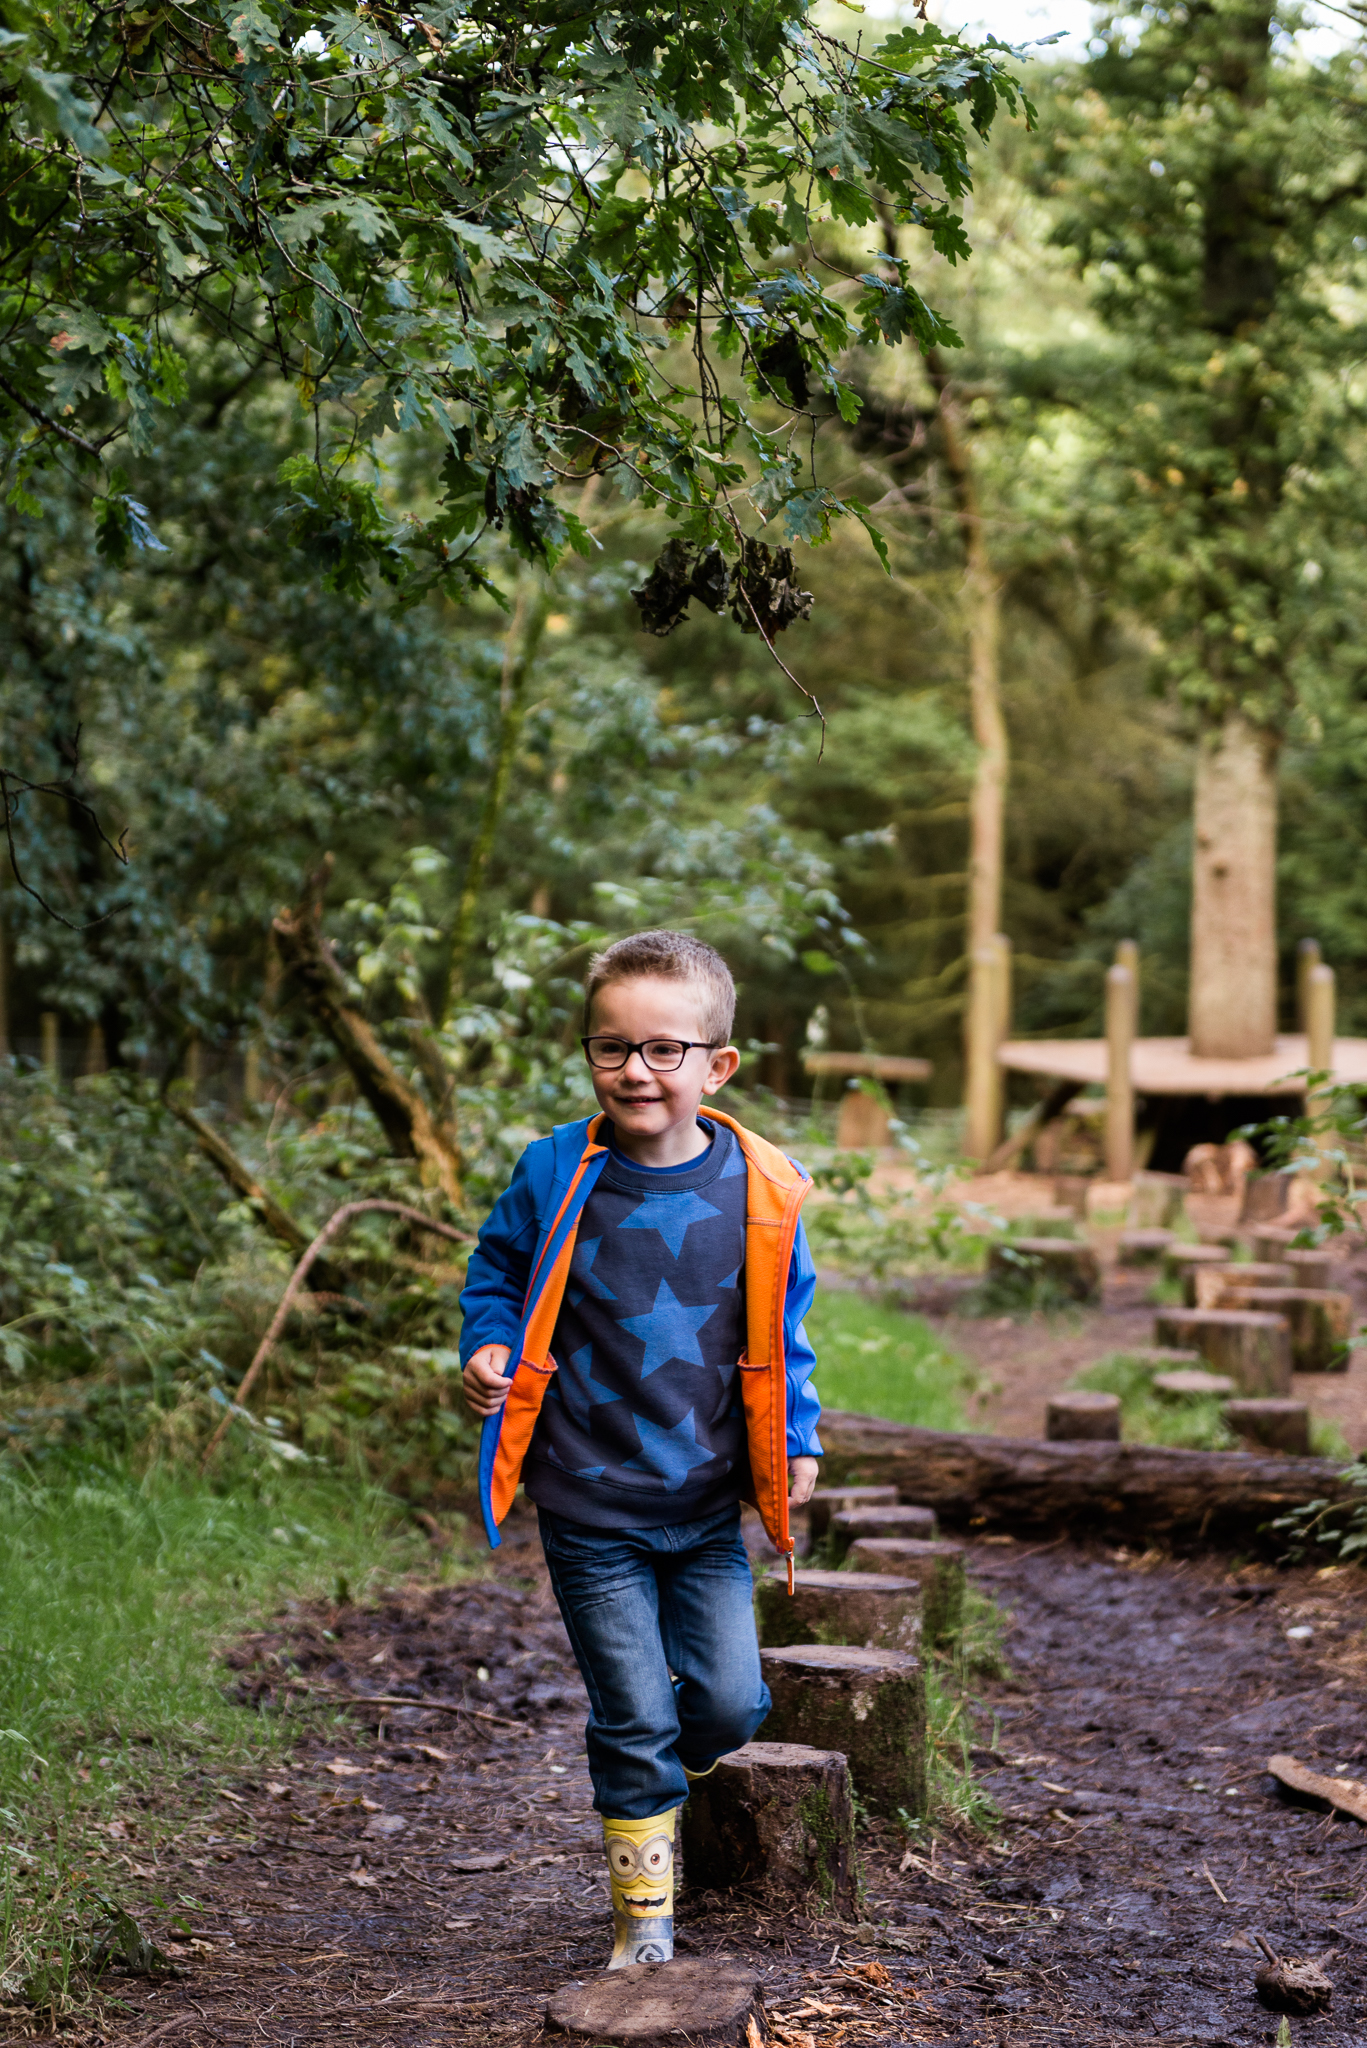 Documentary Family Photography at Clent Hills, Worcestershire Family Lifestyle Photography Woods Outdoors Trees Flying Kite - Jenny Harper-4.jpg